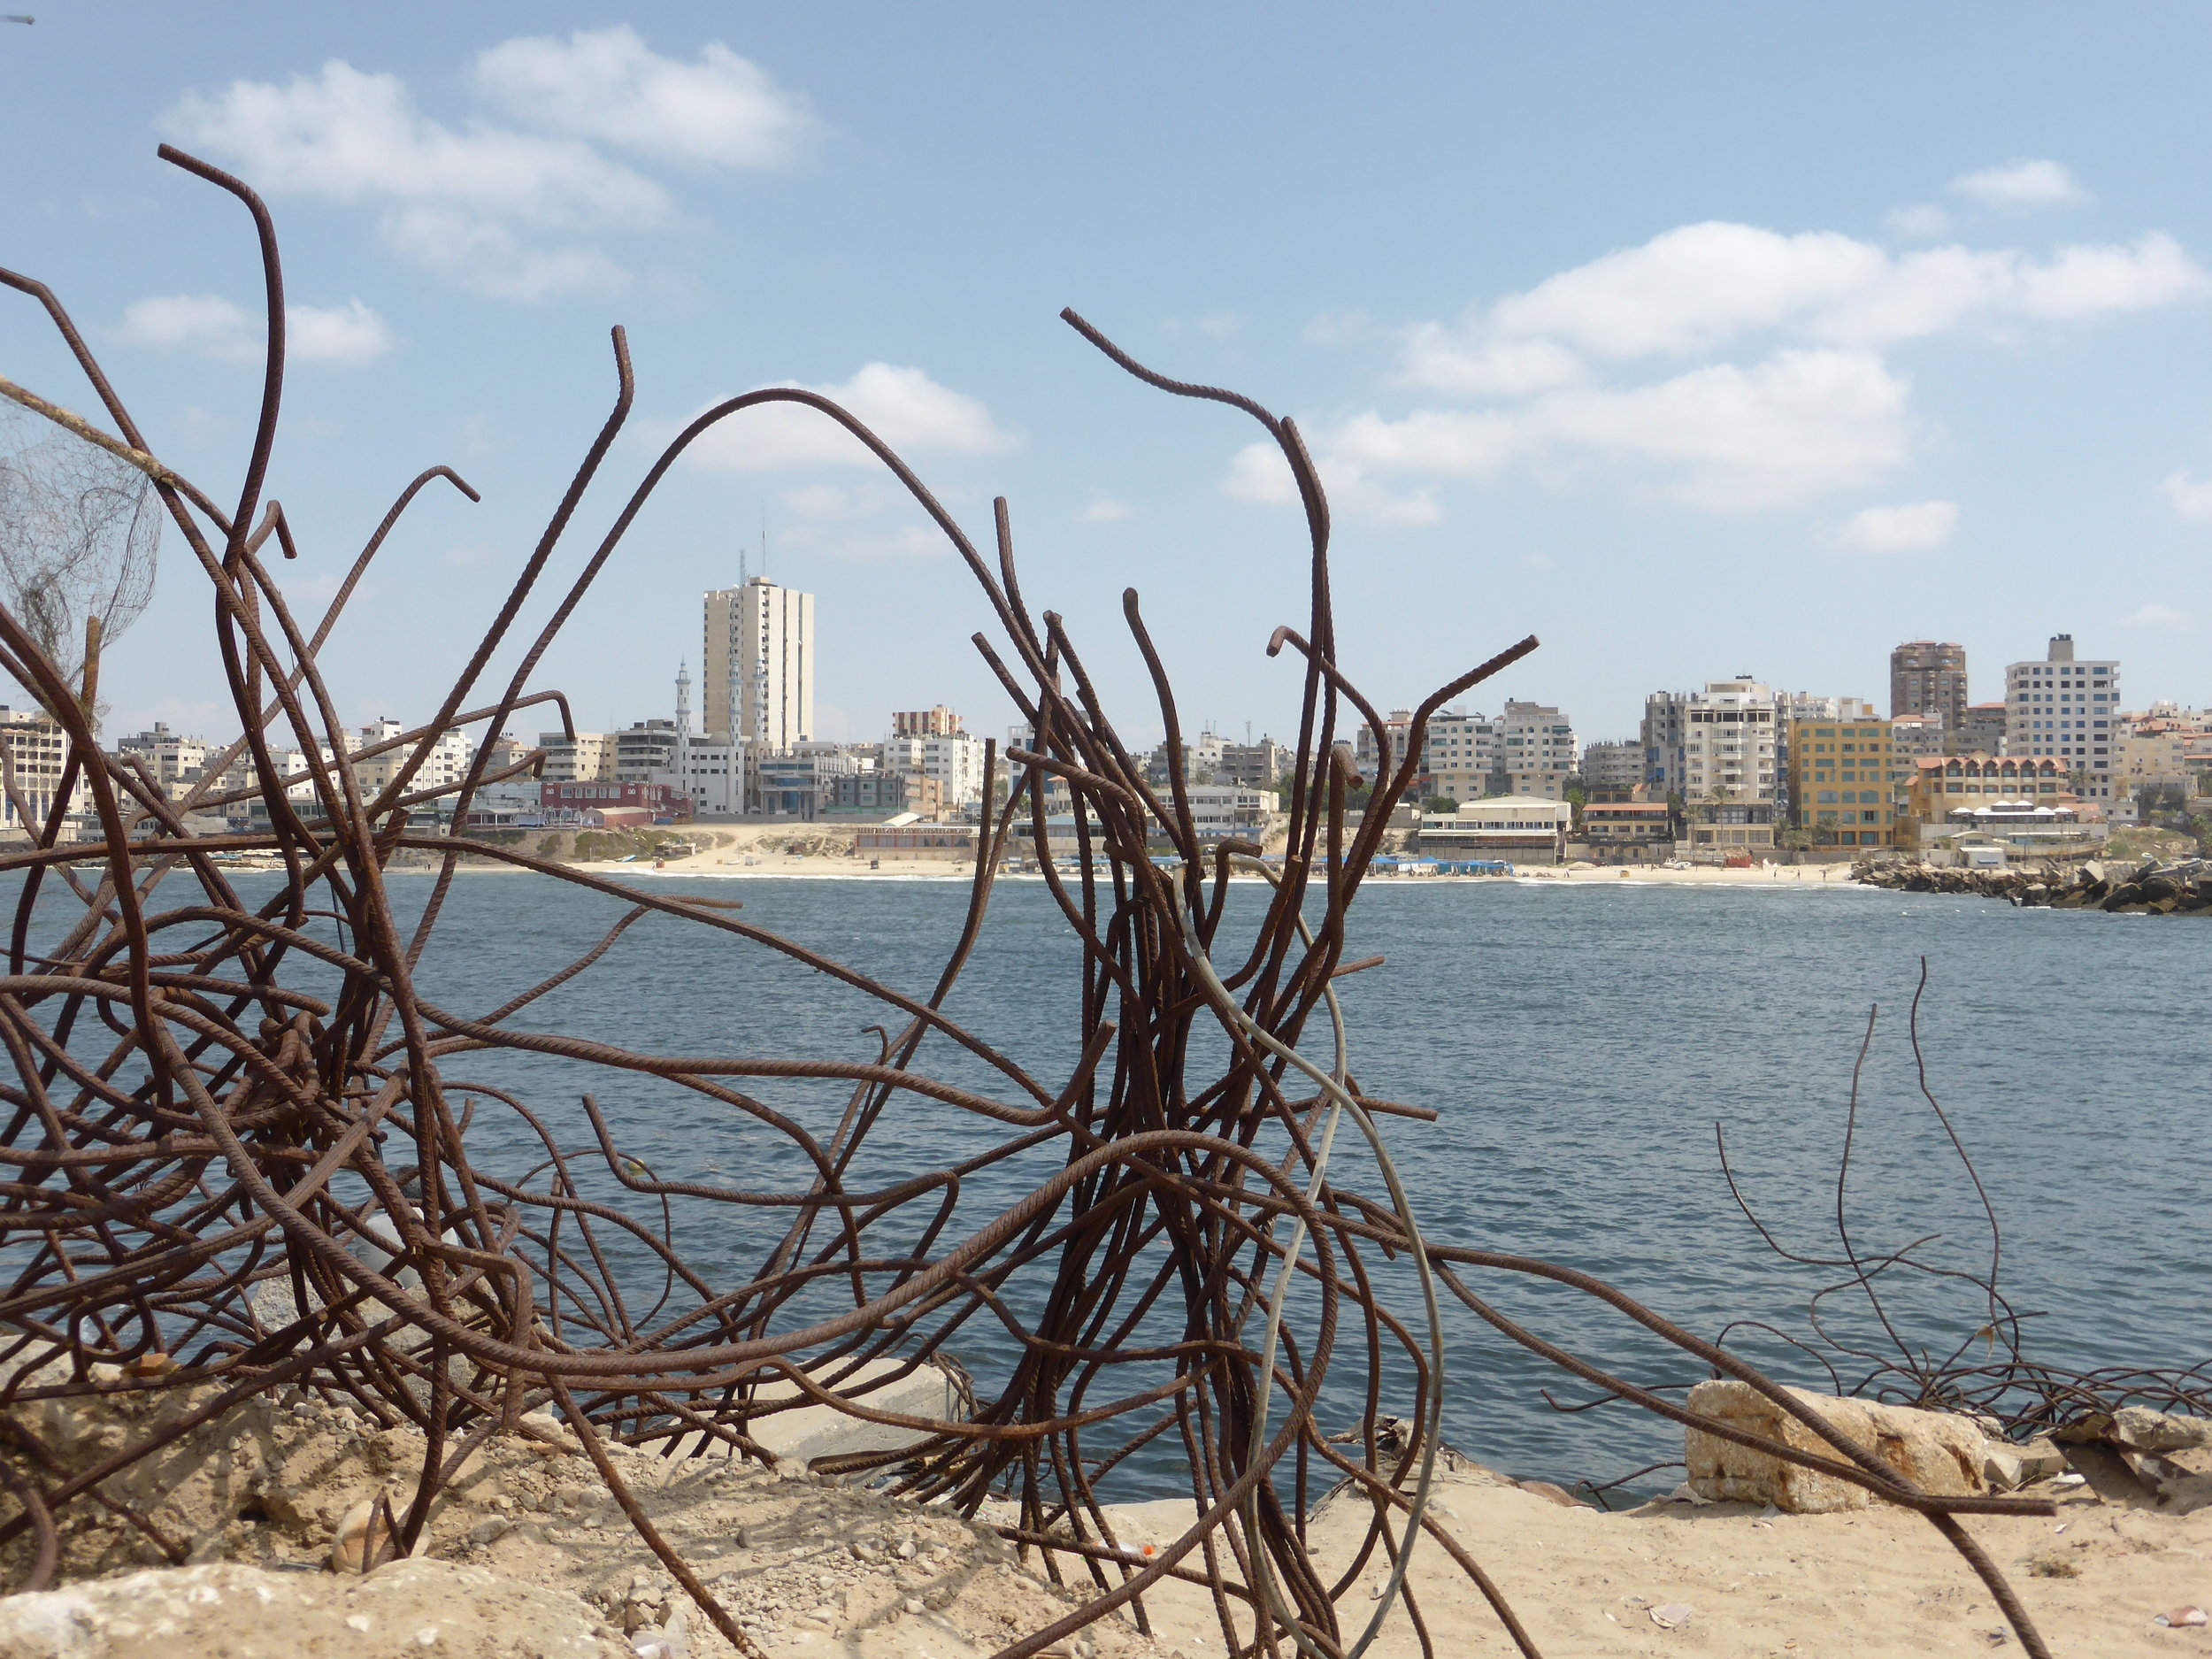 Standing on the breakwater, and looking back towards Gaza City and the shoreline.